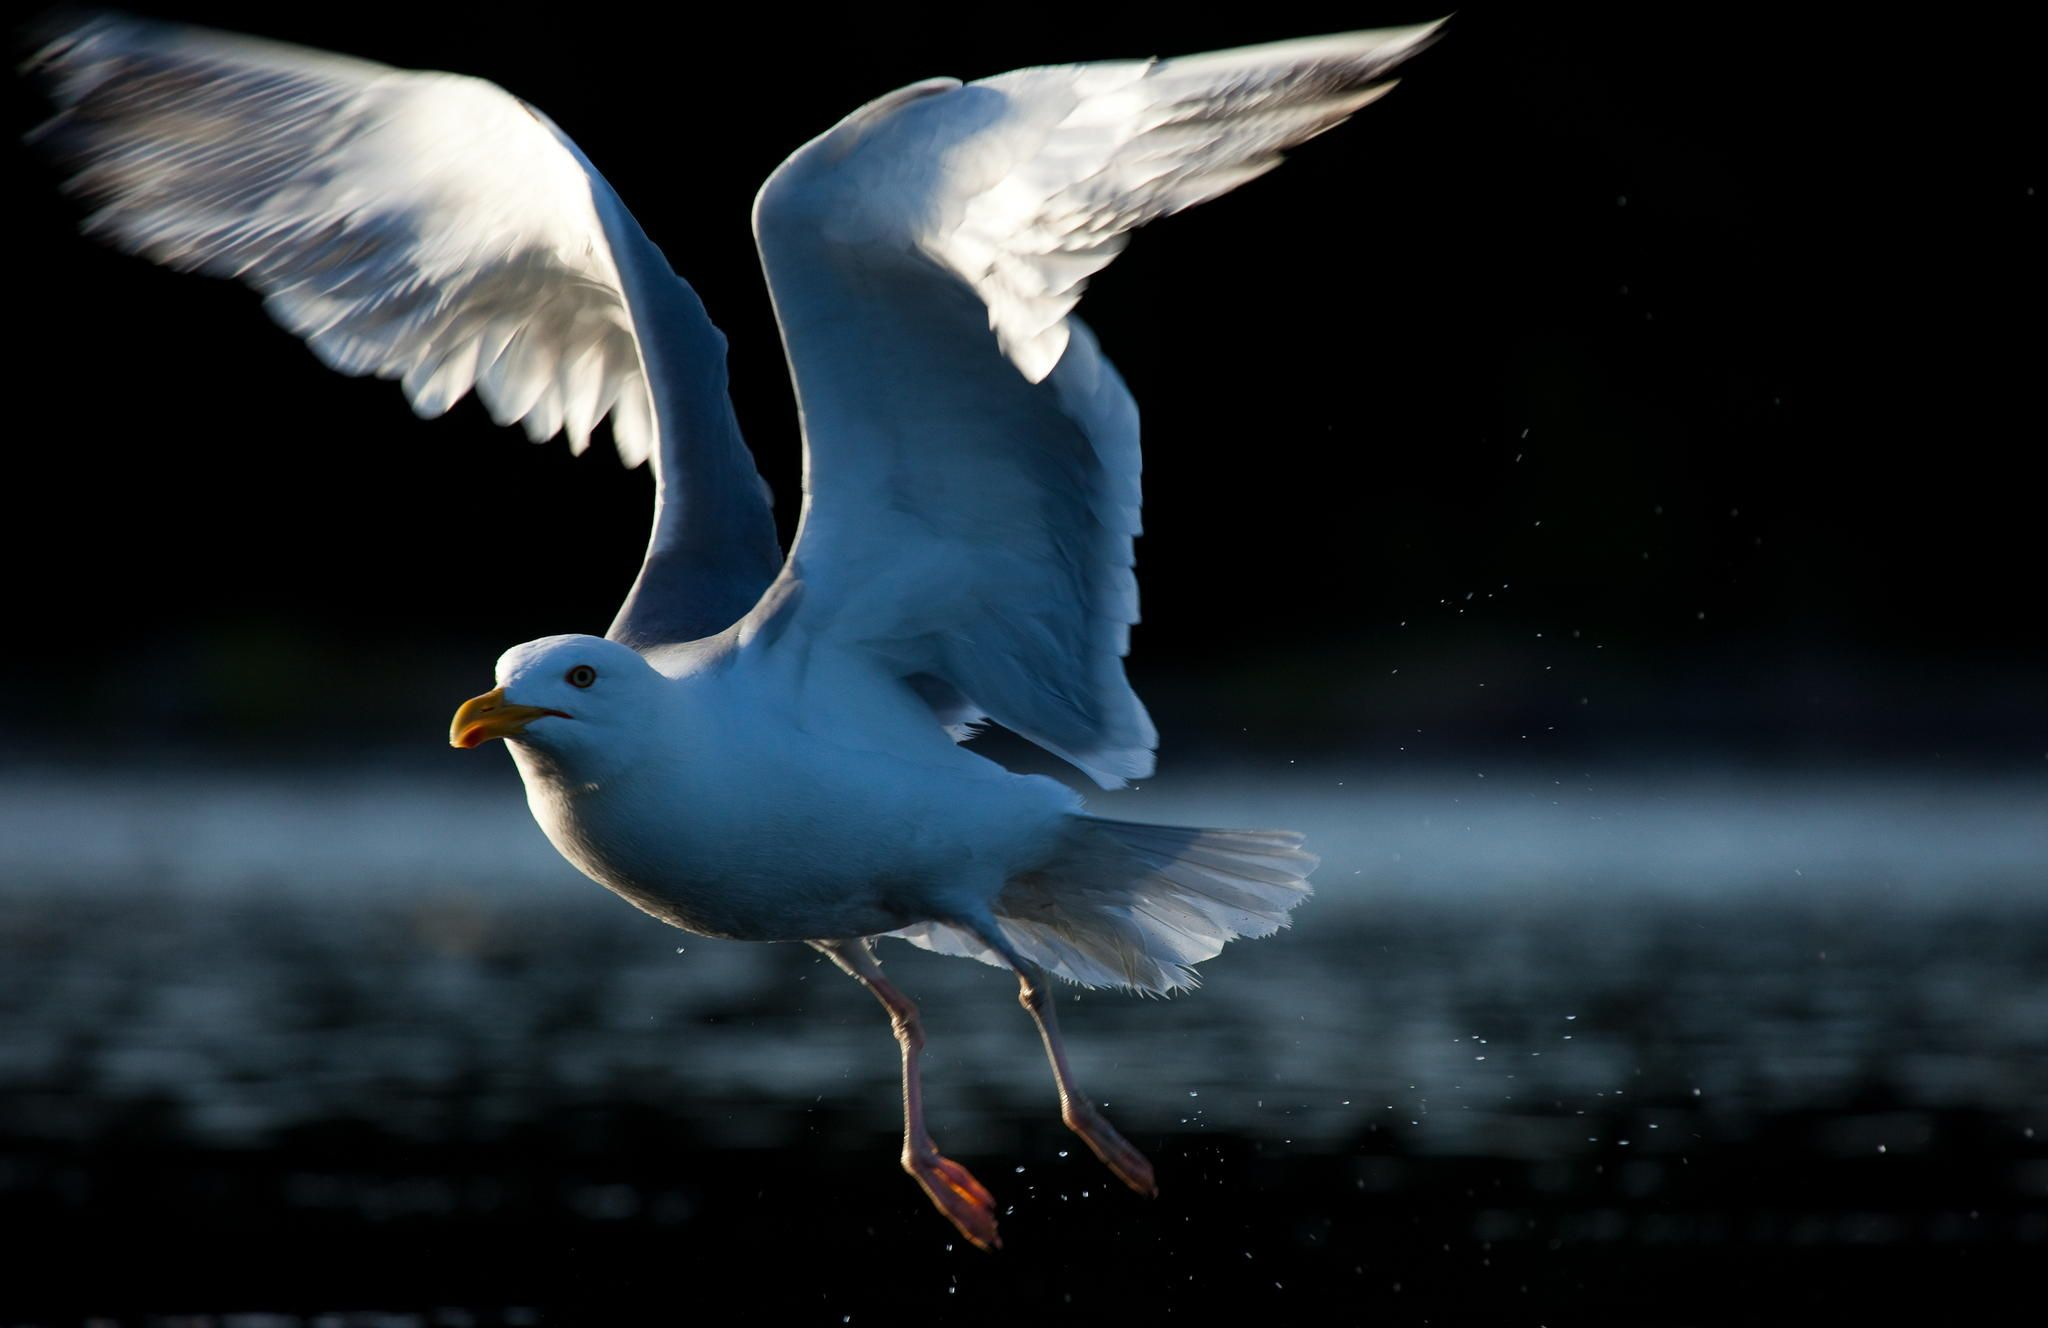 Herring gull by Viktor Andersson on 500px